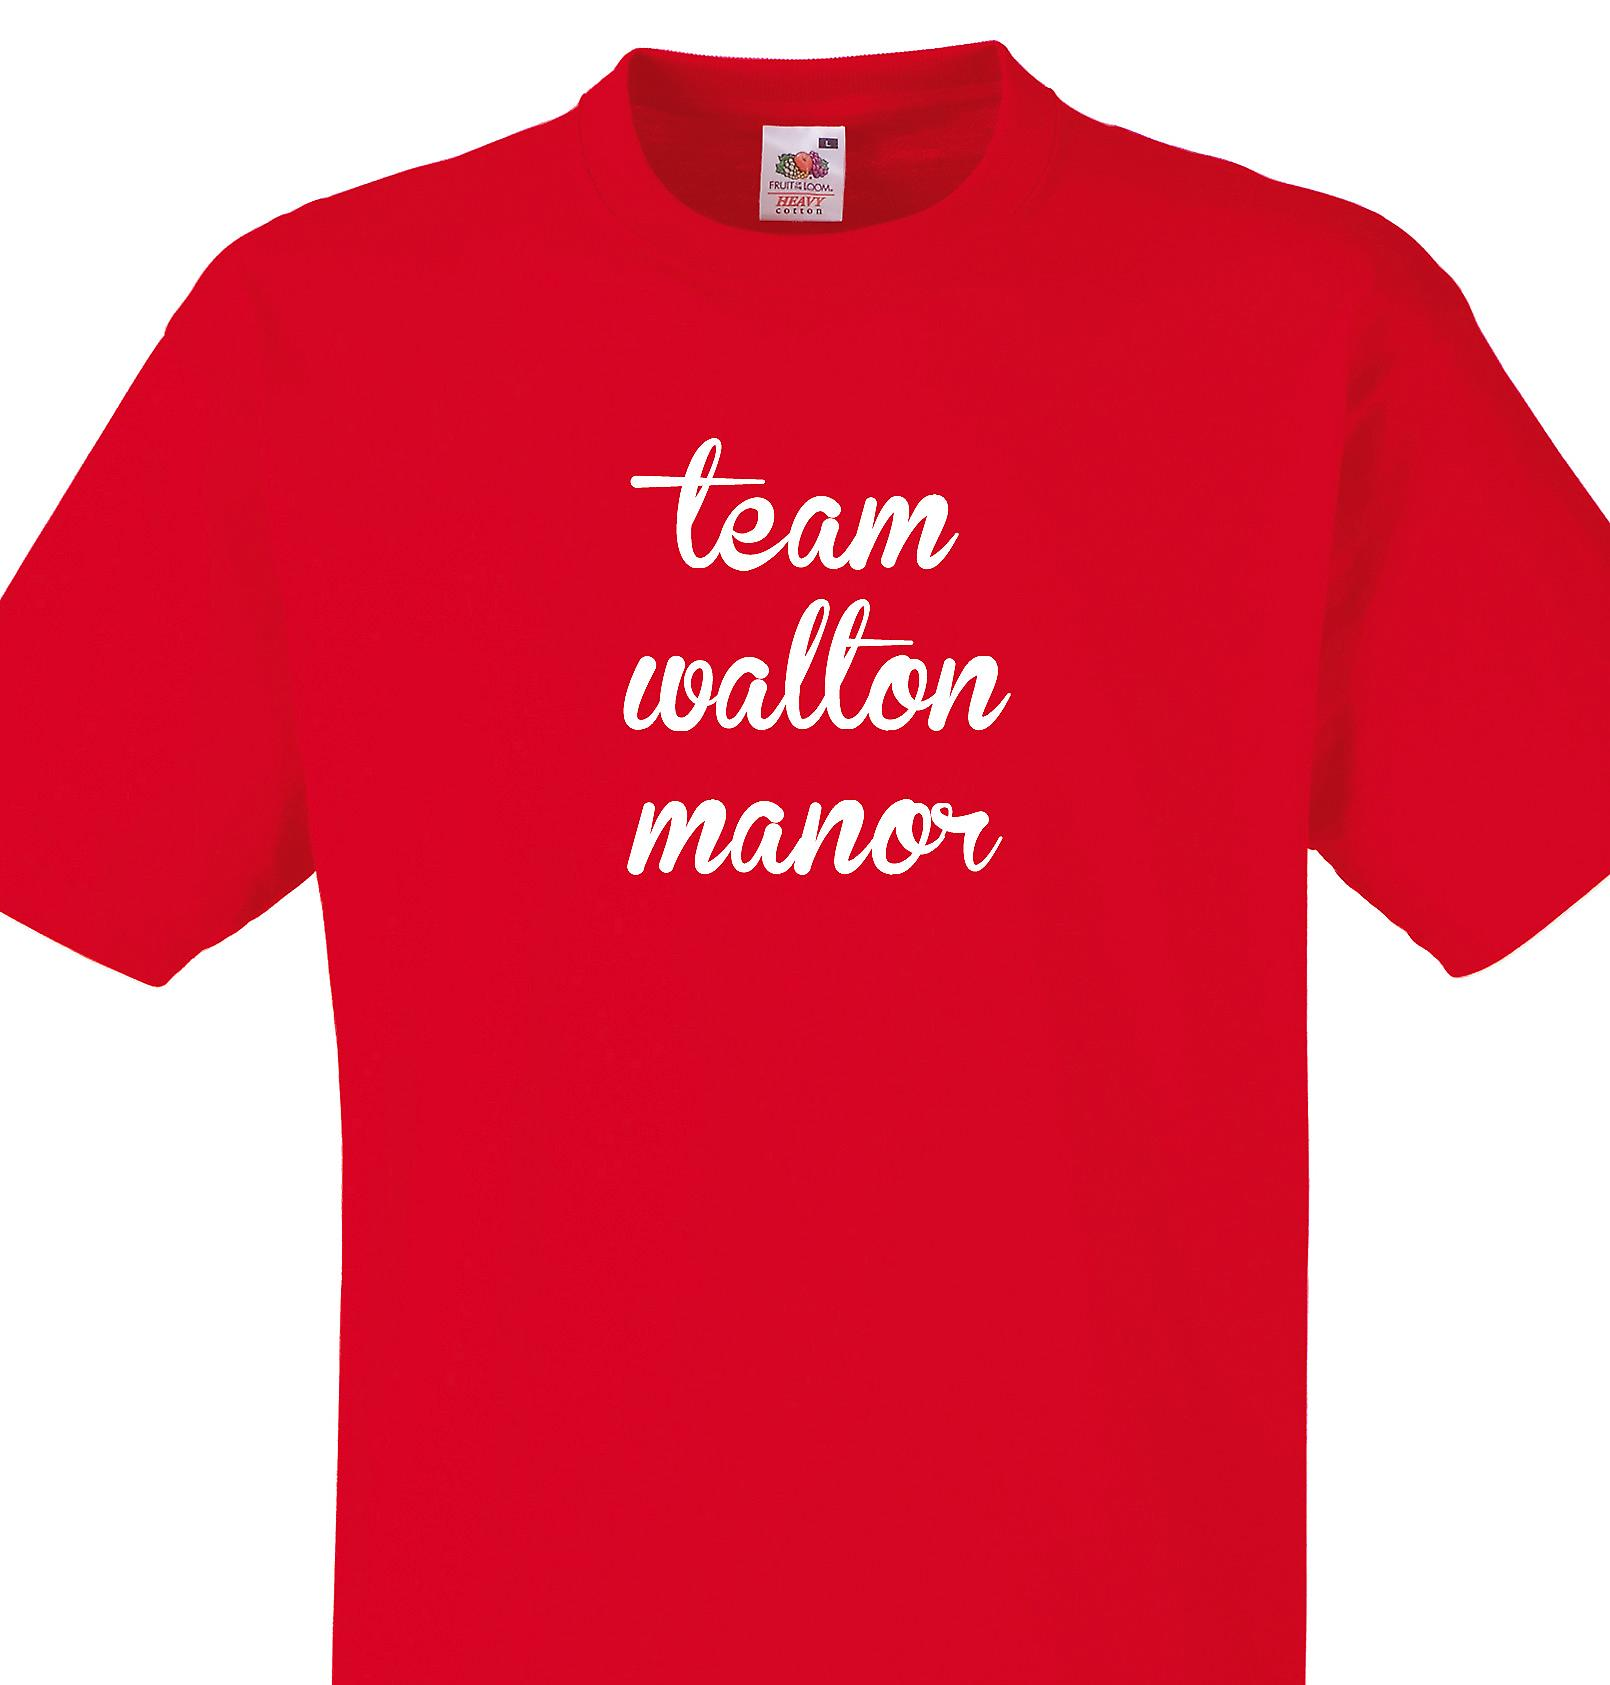 Team Walton manor Red T shirt